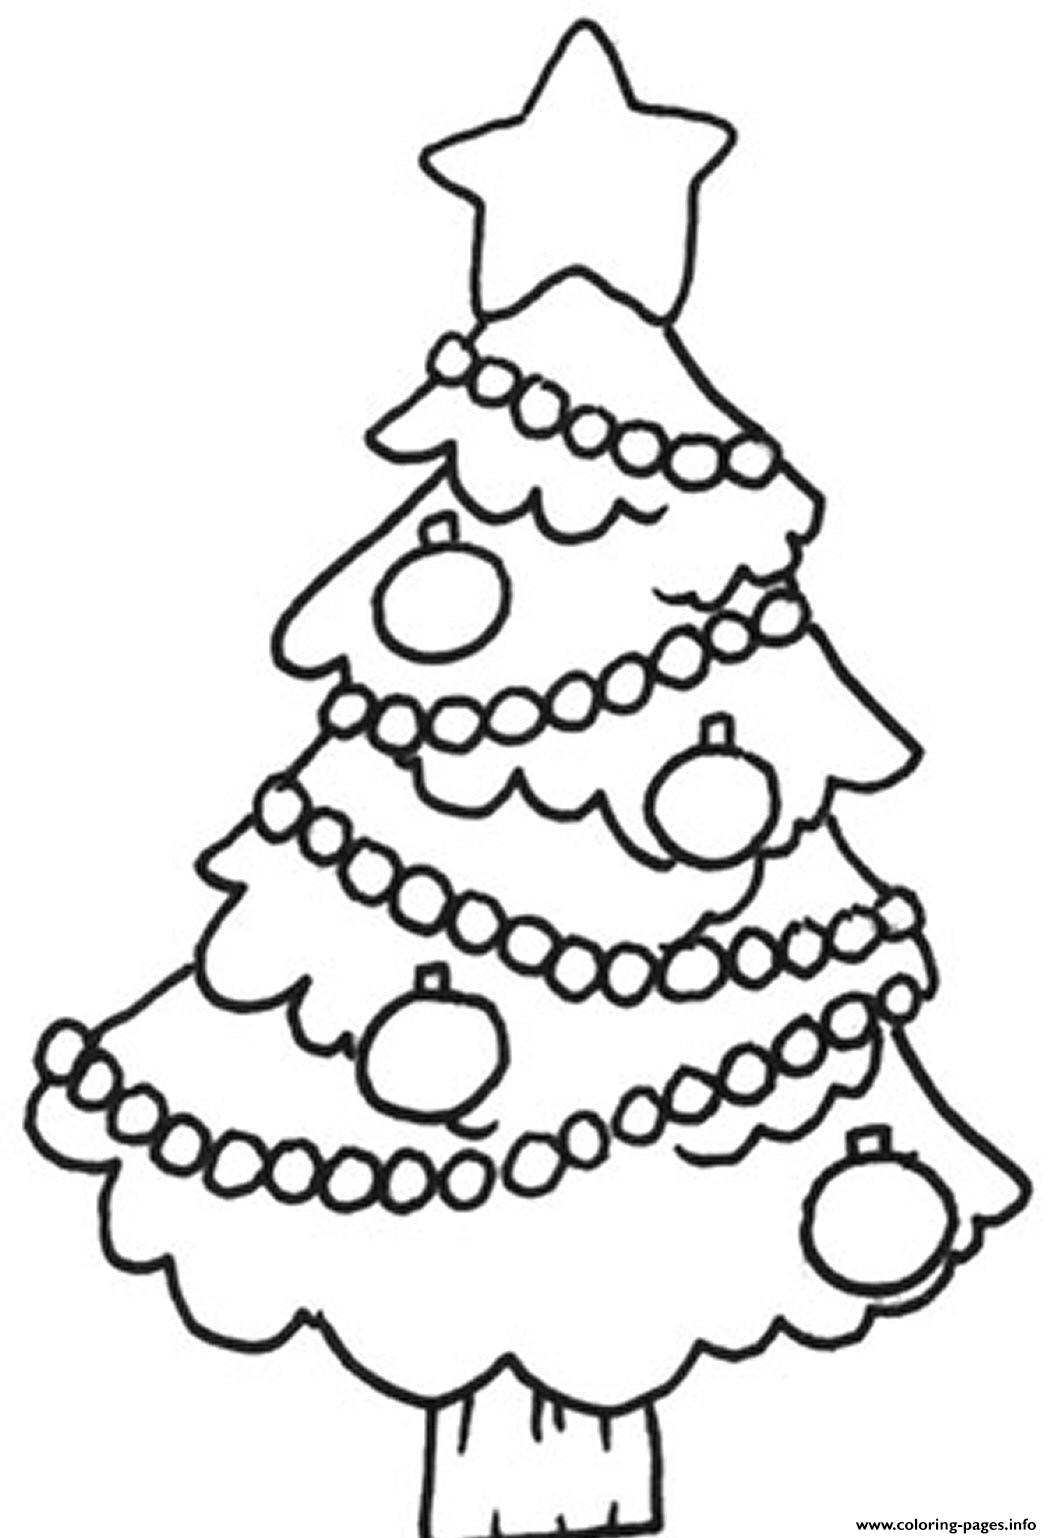 Easy Christmas Tree S For Childrenb7ca coloring pages